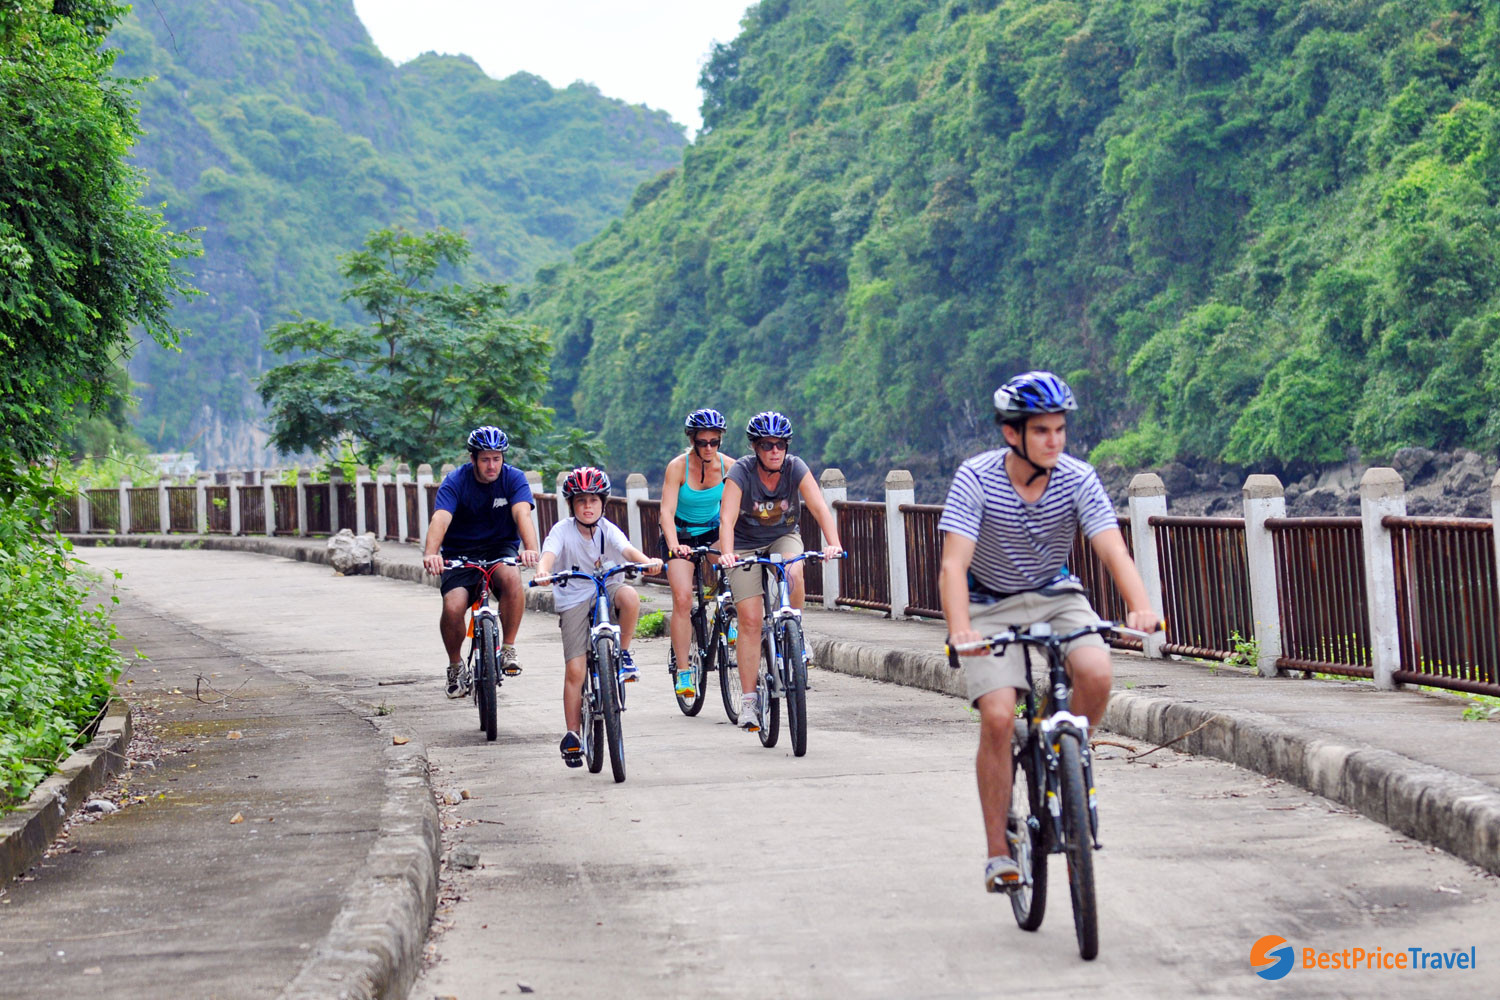 Cycling is usually offer in 3d2n Halong Bay tour itinerary